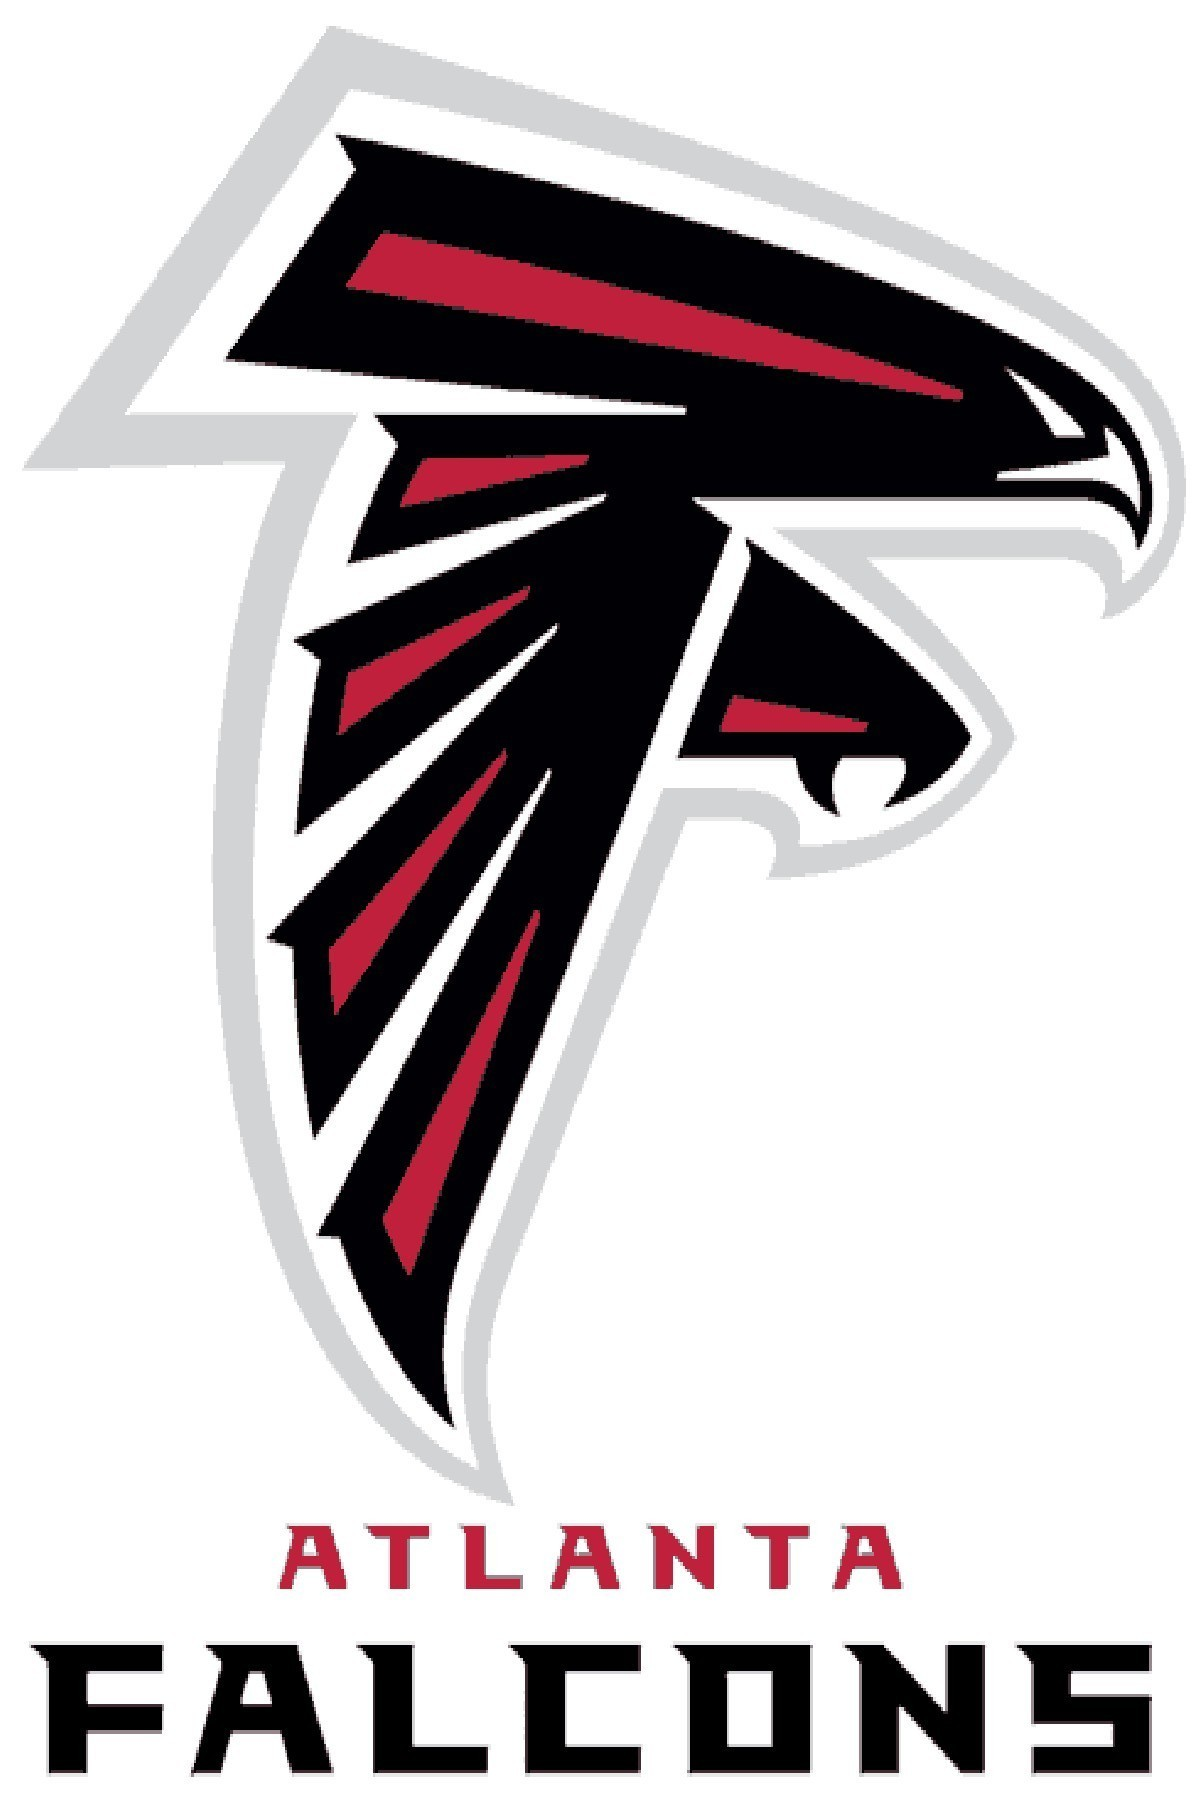 Atlanta falcons images logo hd wallpaper and background photos 3974776 atlanta falcons images logo hd wallpaper and background photos voltagebd Images